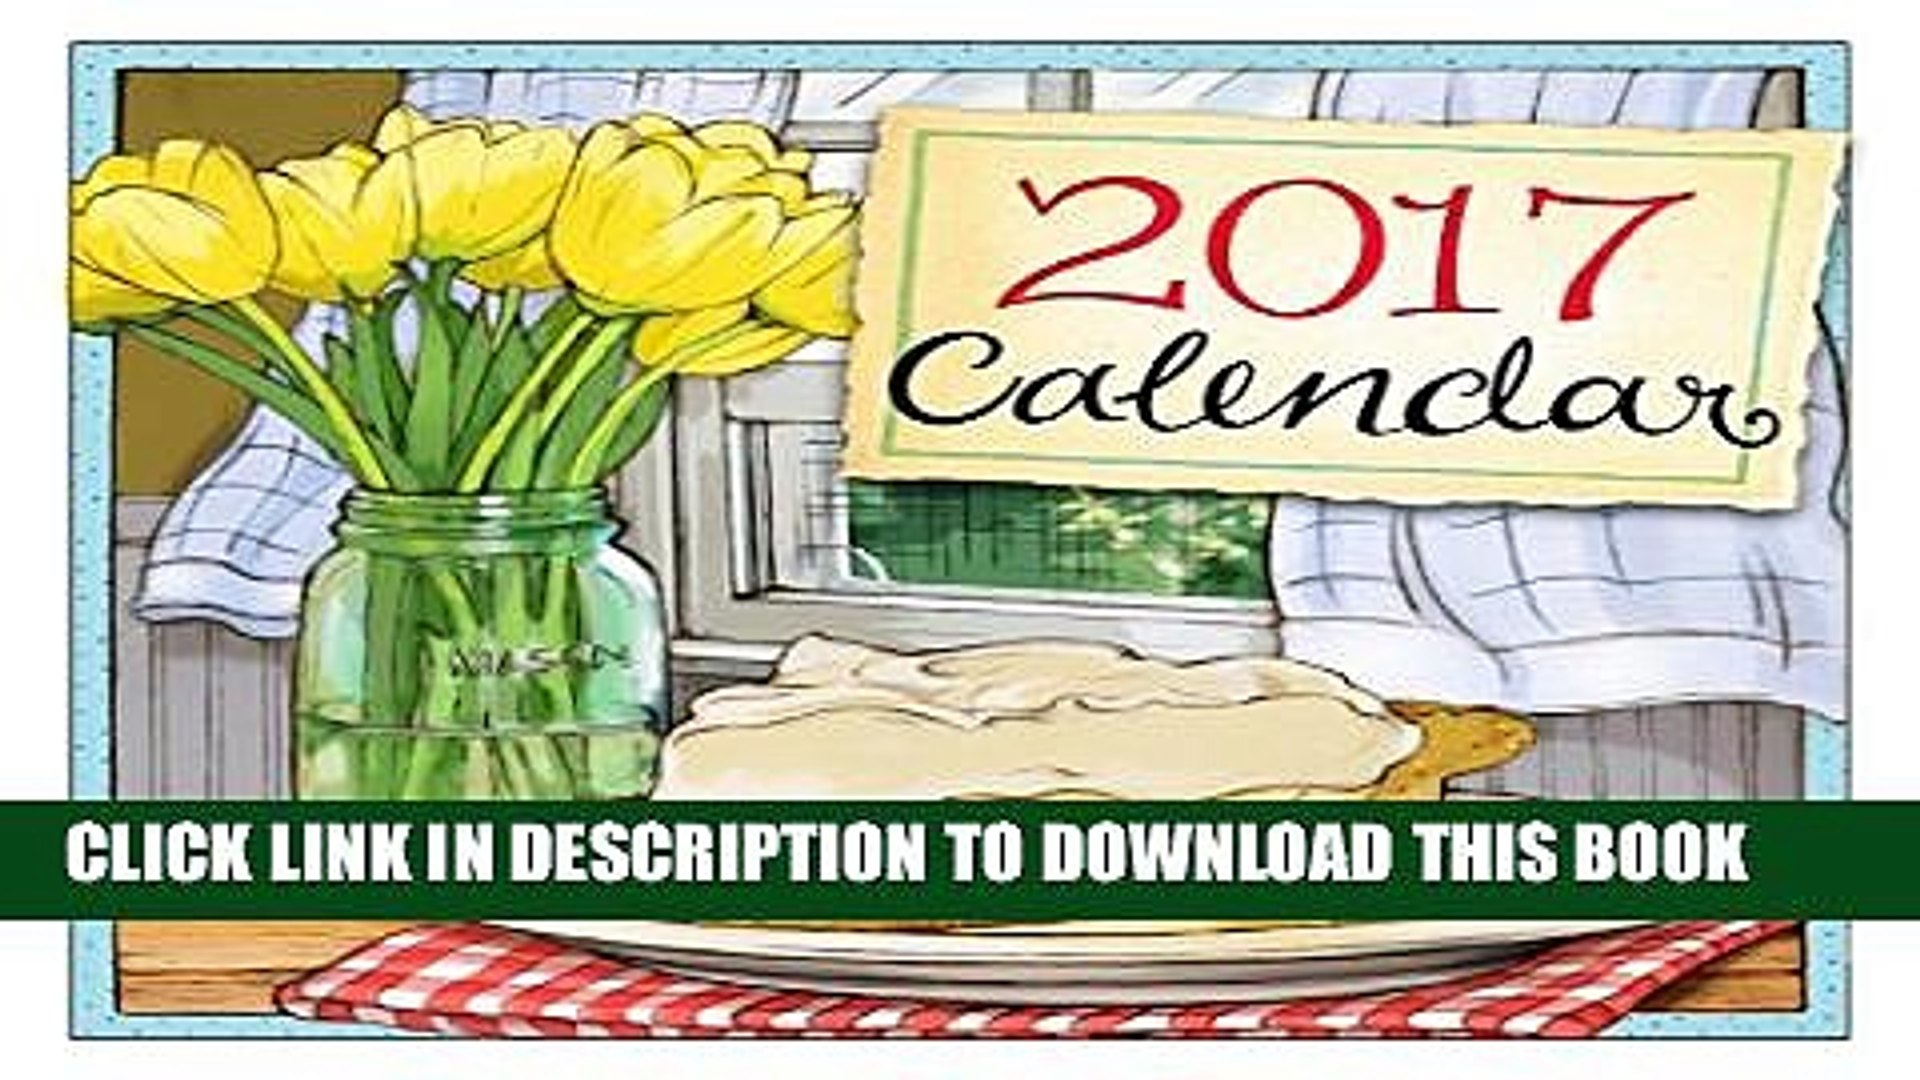 [PDF] 2017 Gooseberry Patch Wall Calendar Full Collection[PDF] 2017 Gooseberry Patch Wall Calendar